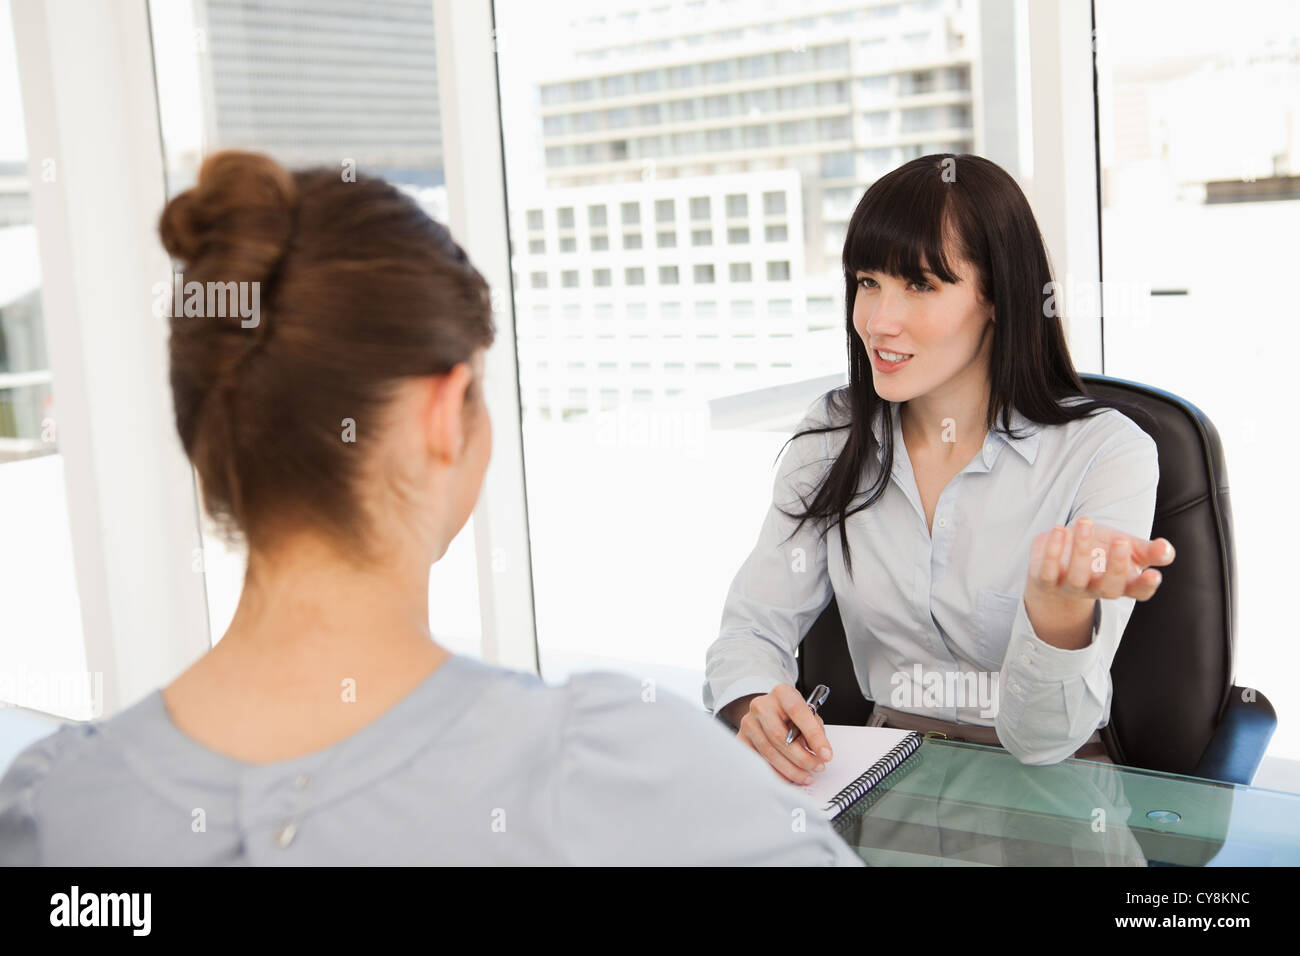 Business woman interviews a potential new employee Stock Photo